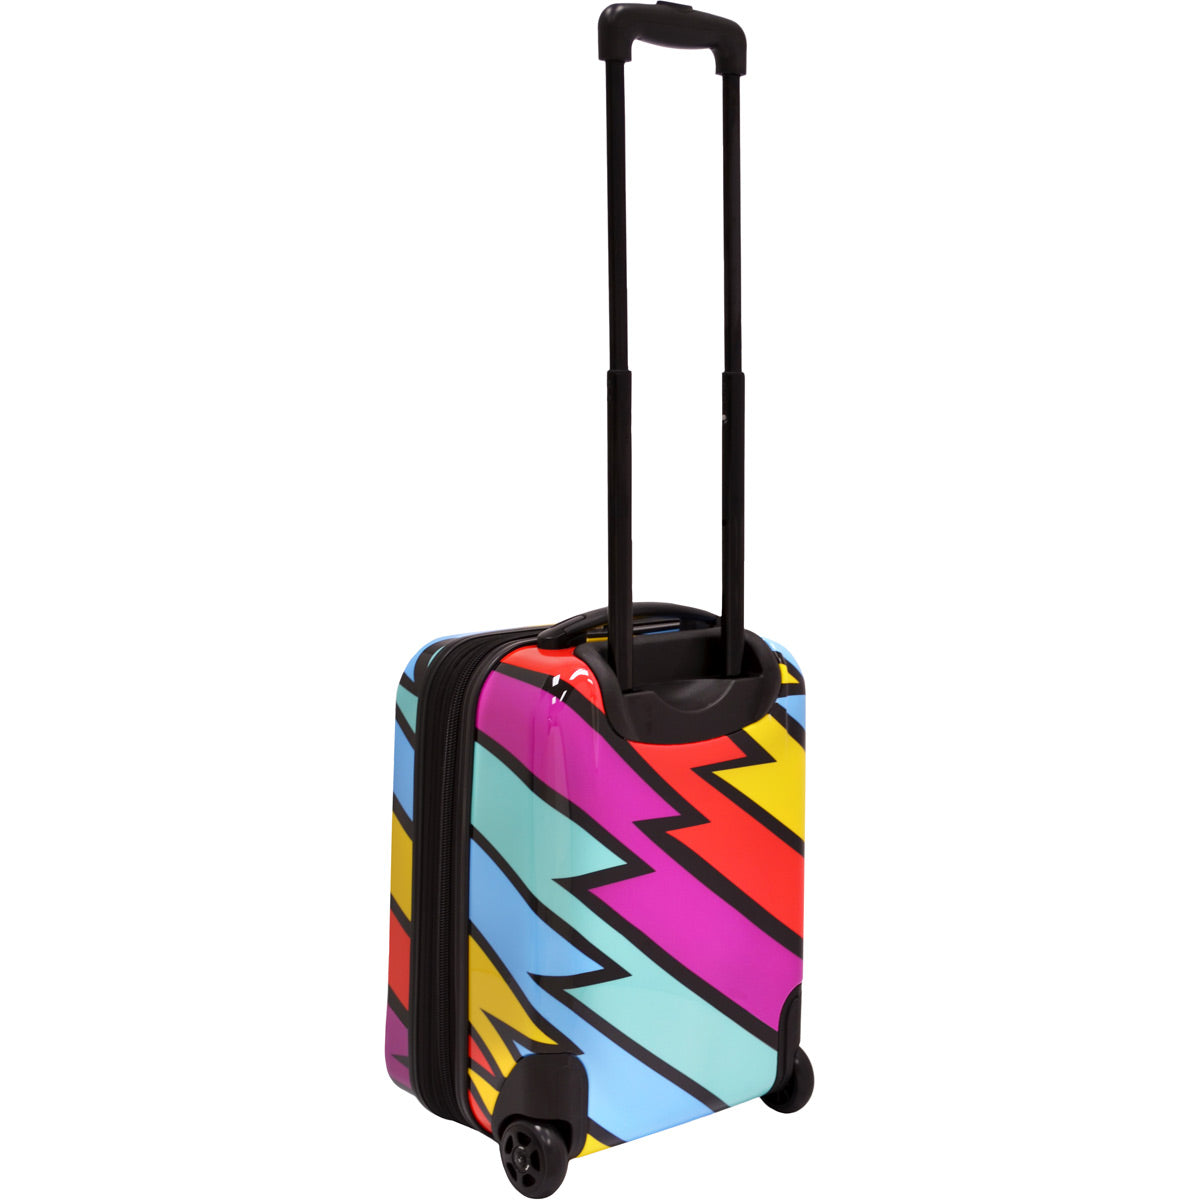 Loudmouth Captain Thunderbolt 18in Hardside Expandable Rolling Luggage